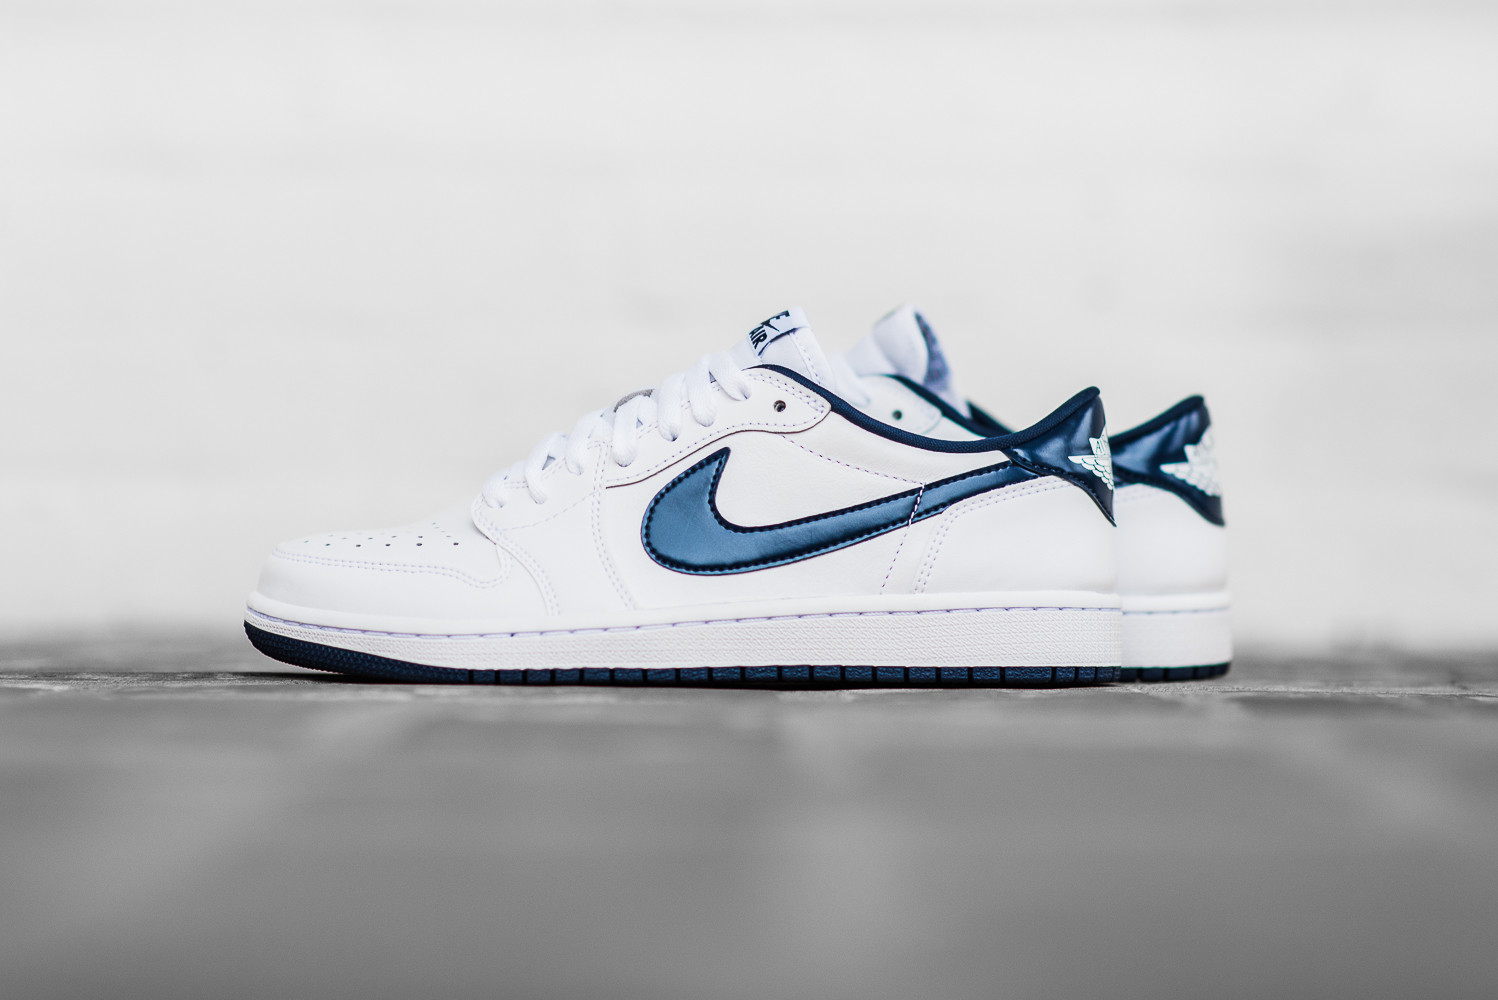 64d25843aa4783 Air Jordan 1 Low OG Archives - Air Jordans